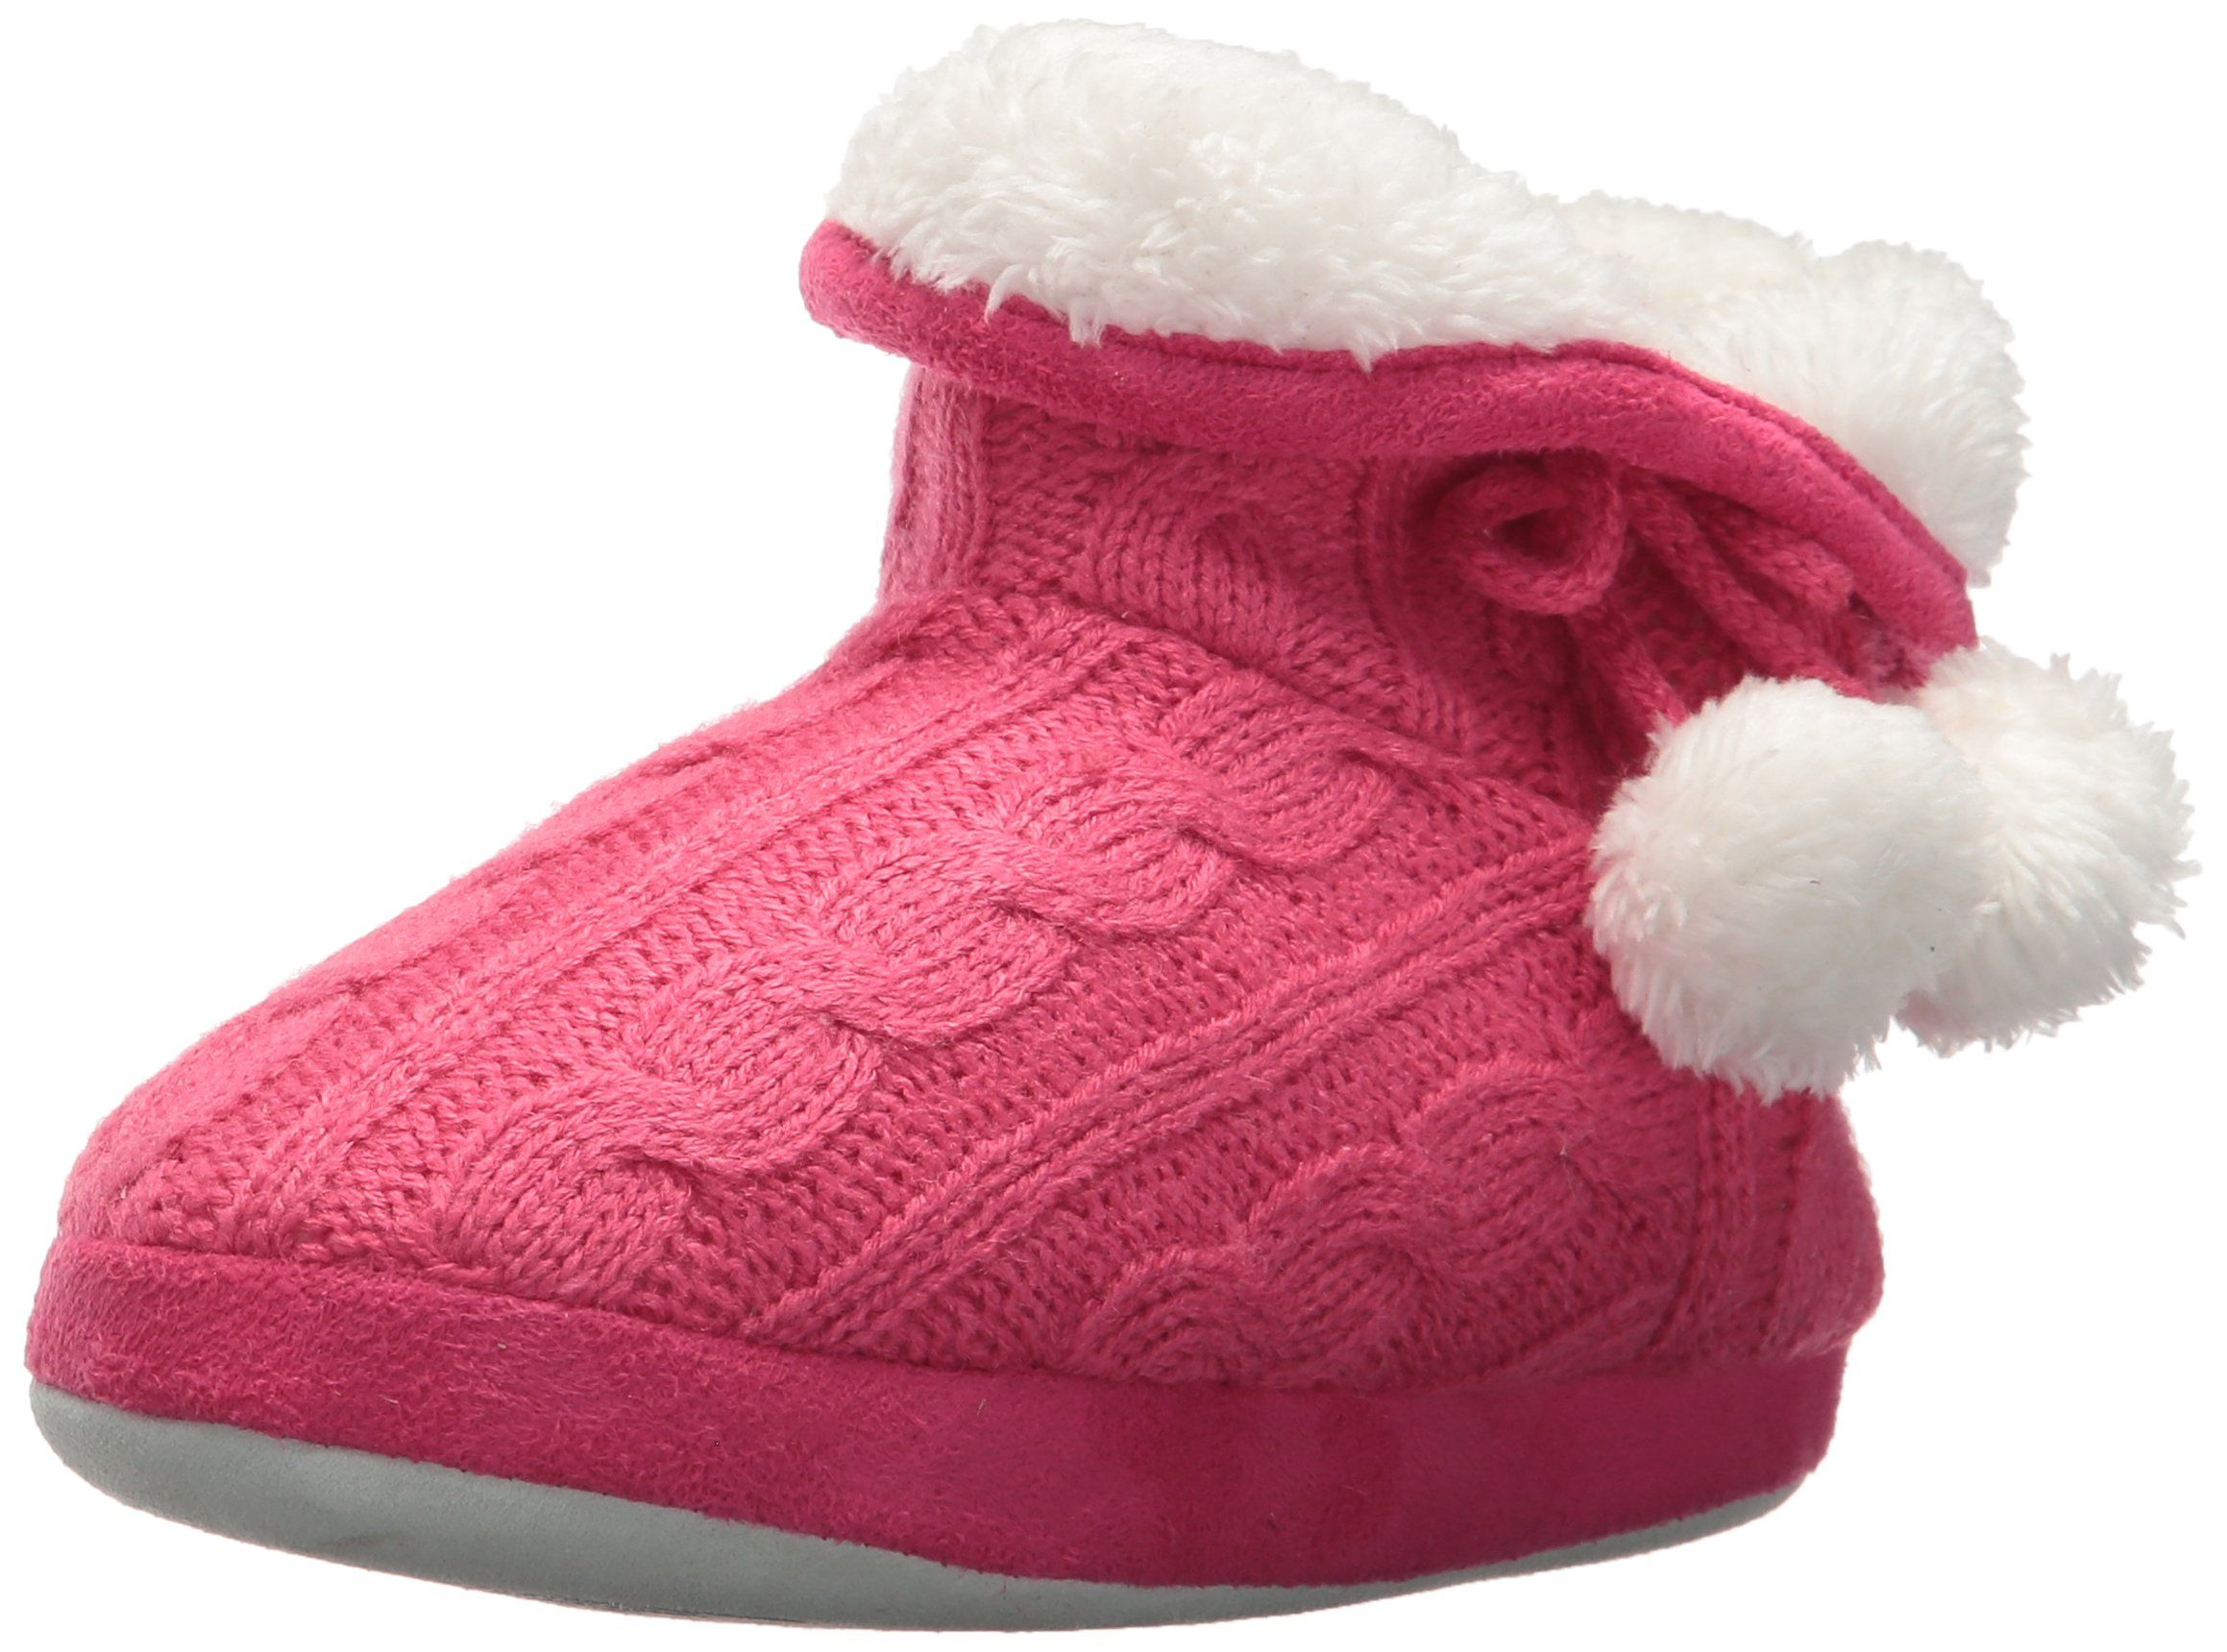 Stride Rite Girls Boot Slipper Charlotte Cable Pink 9 10 M US